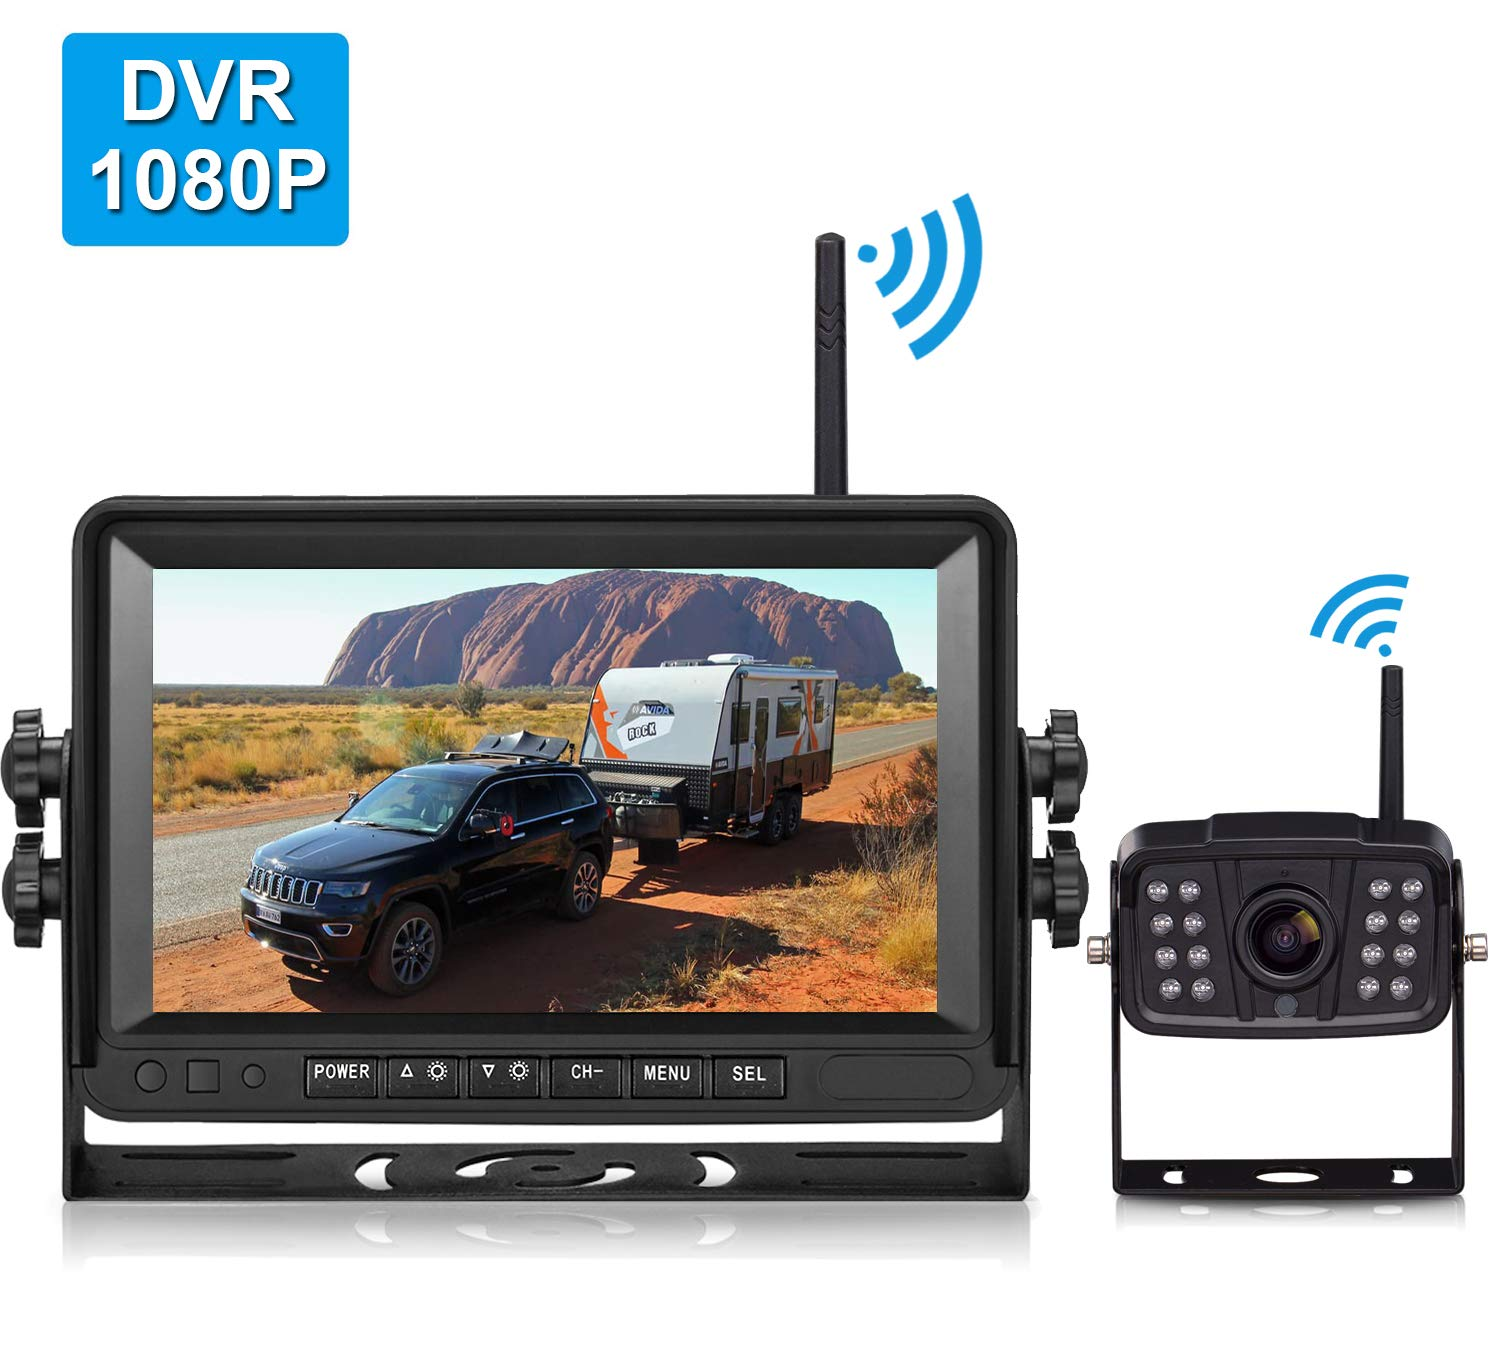 FHD 1080P Digital Wireless Backup Camera and 7'' DVR Monitor Support Dual/Quad Split Screen for Trailers,Trucks,RVs,5th Wheels Highway Observation System IP69K Waterproof Guide Lines On/Off by DoHonest